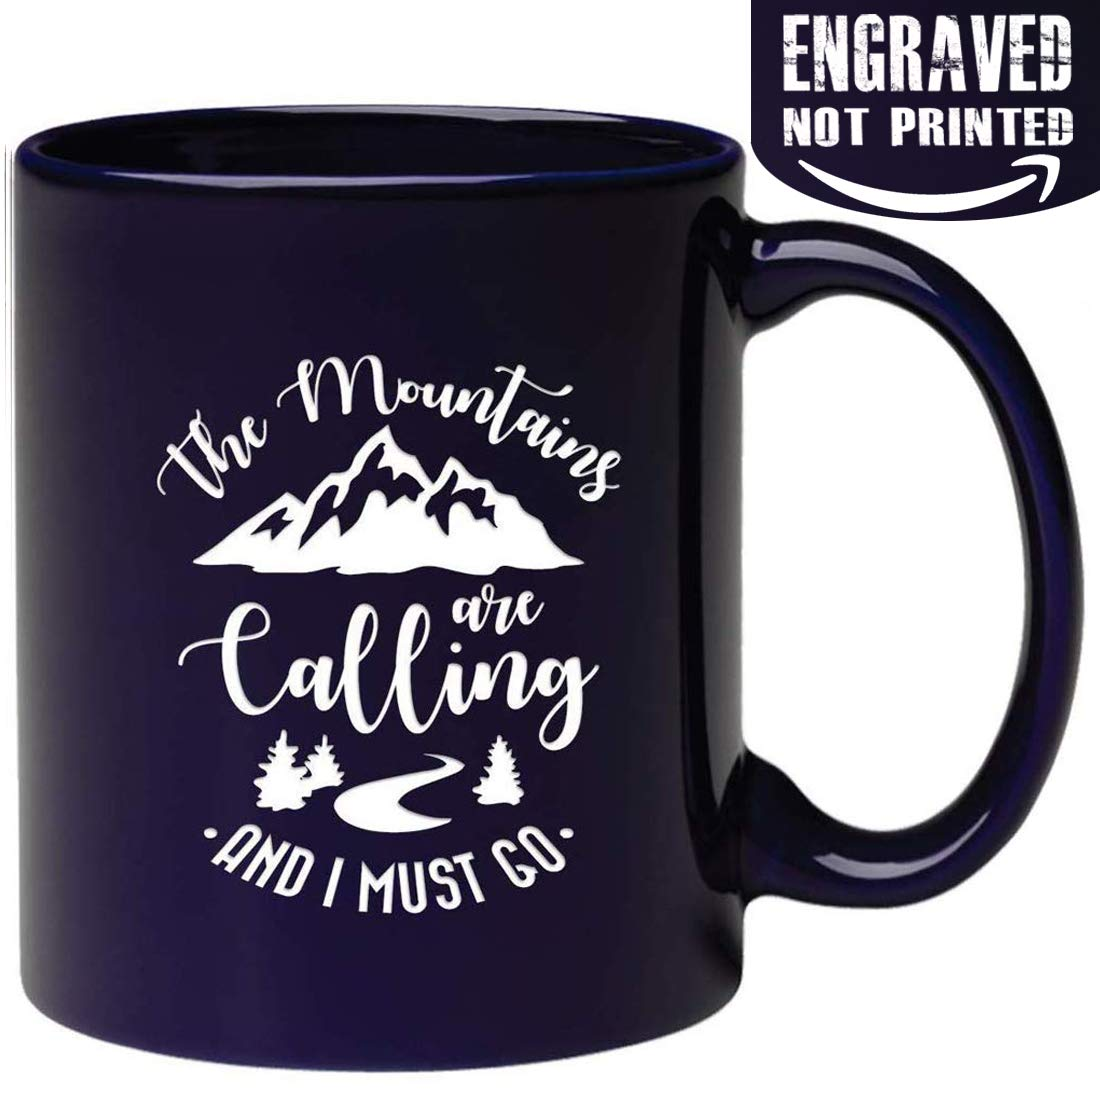 Engraved The Mountains are Calling And I Must Go Coffee Mug- I love you to the adventure begins and back camping travel hiking never ends for Retired Dad Grandpa Boyfriend Best Friend Coworker Boss